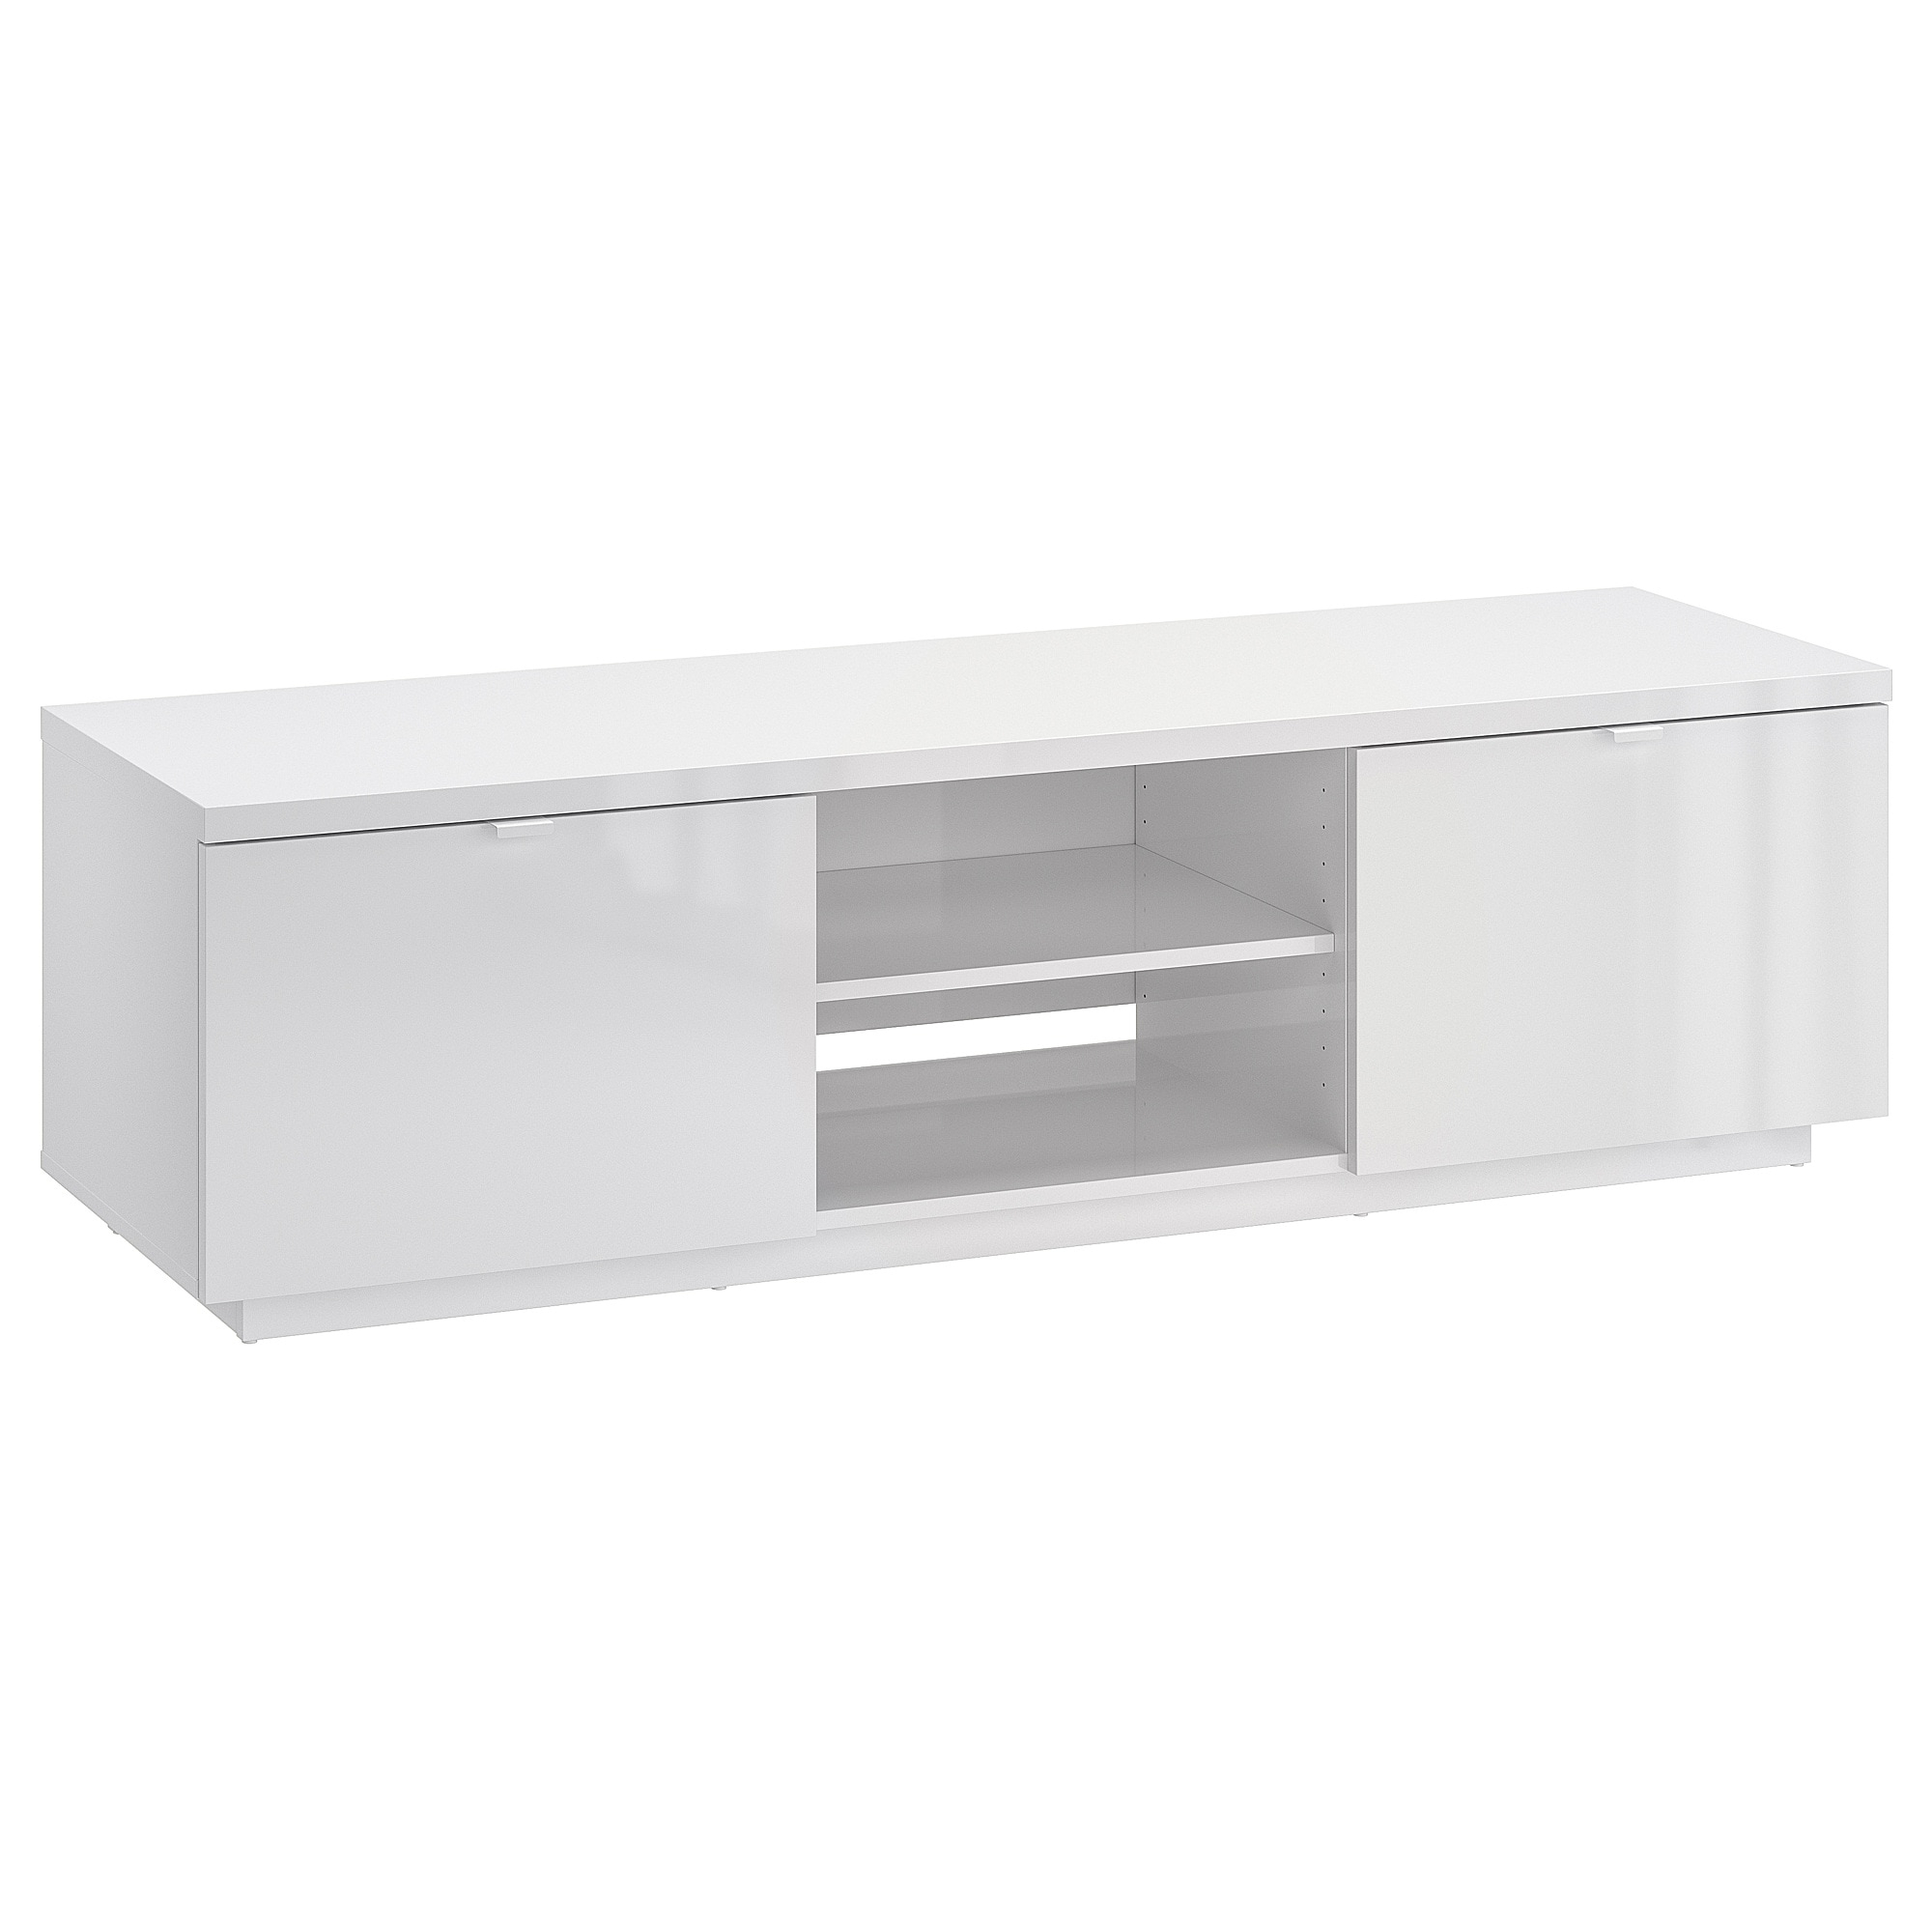 Muebles De Tv Ikea Q5df byà S Mueble Tv Alto Brillo Blanco 160 X 42 X 45 Cm Ikea